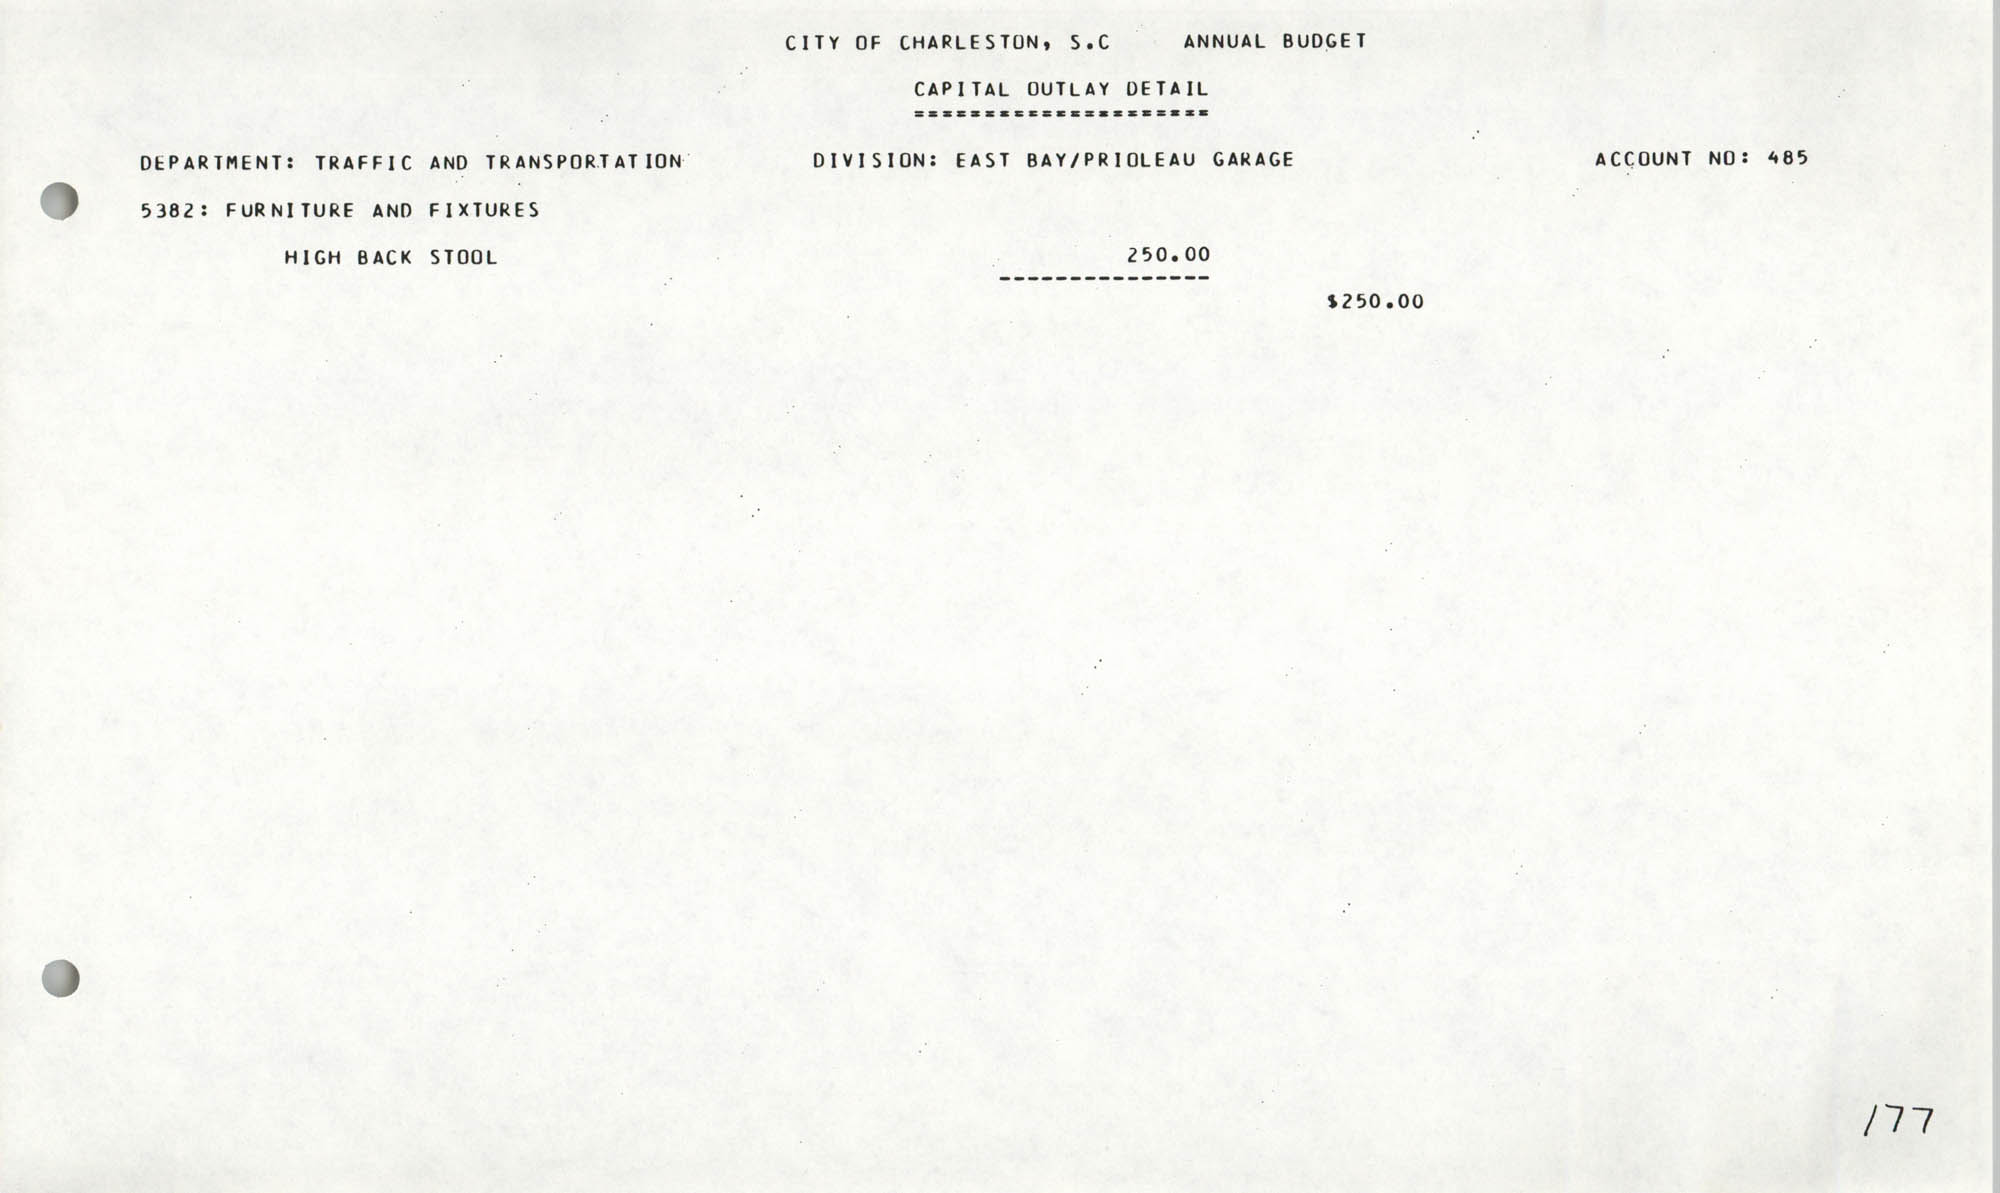 The City Council of Charleston, South Carolina, 1993 Budget, Page 177